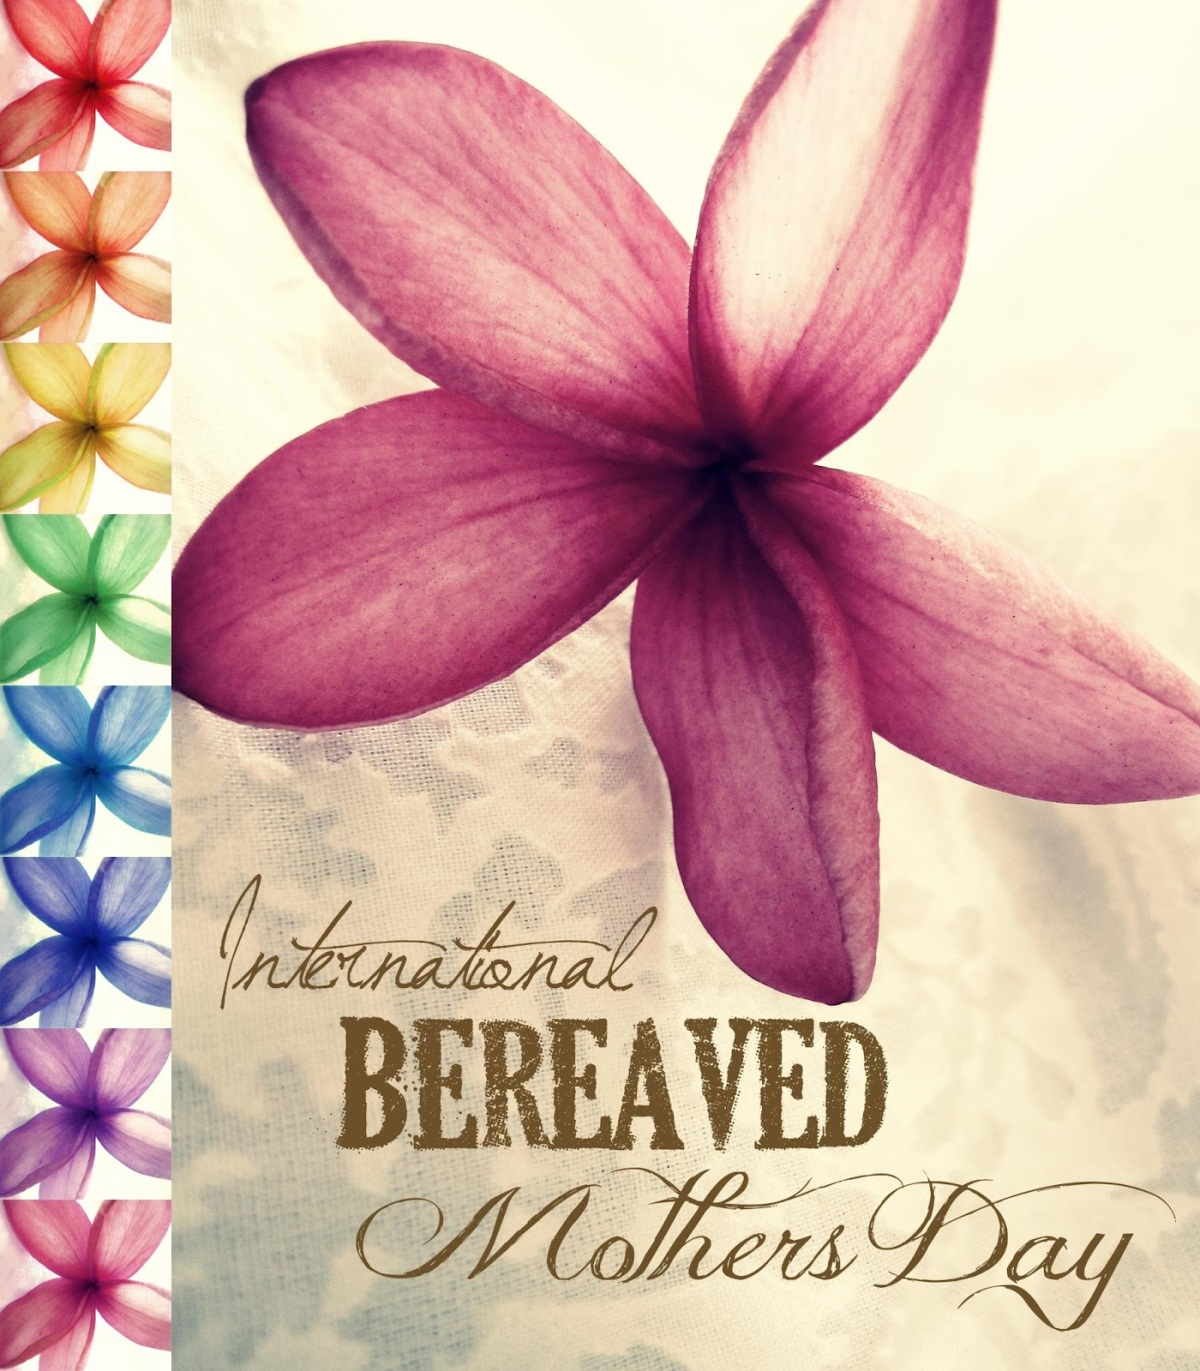 International Bereaved Mother's Day 2018